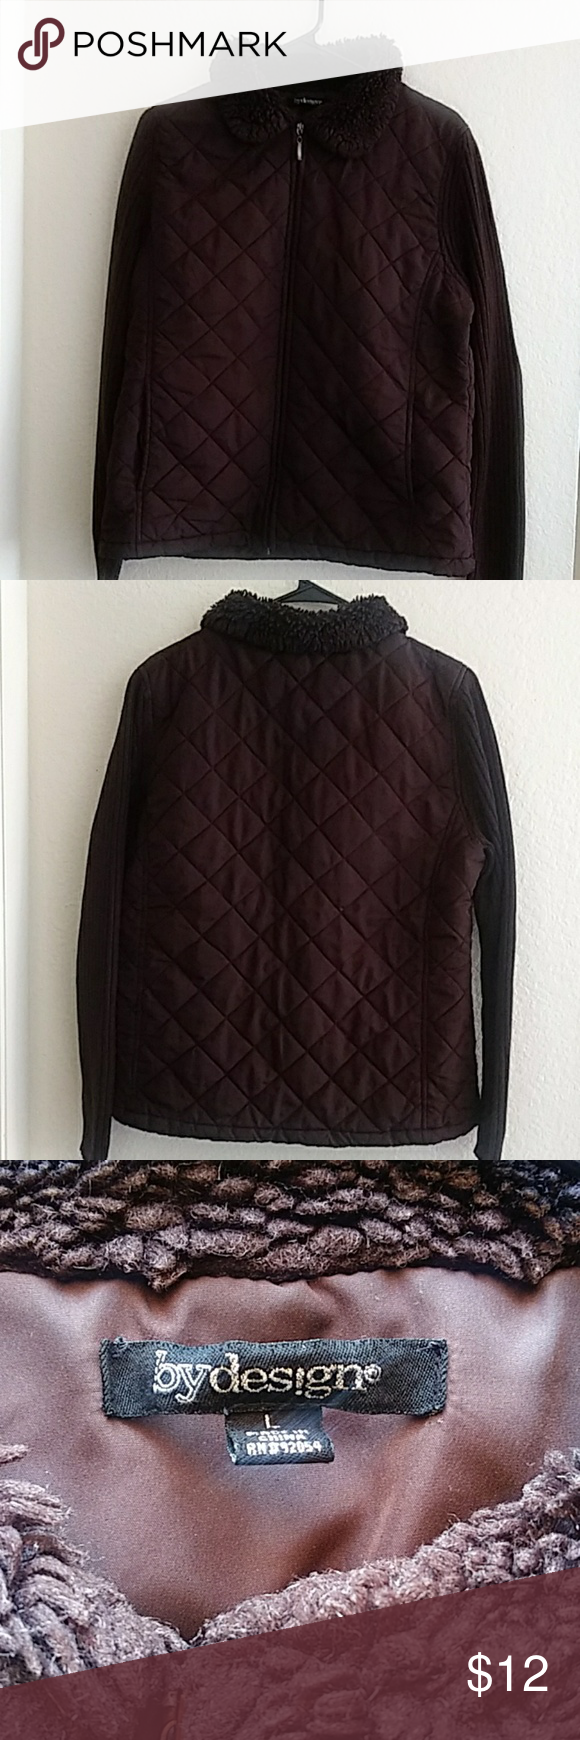 Brown Puffy Jacket Puffy Jacket Clothes Design Jacket Brands [ 1740 x 580 Pixel ]